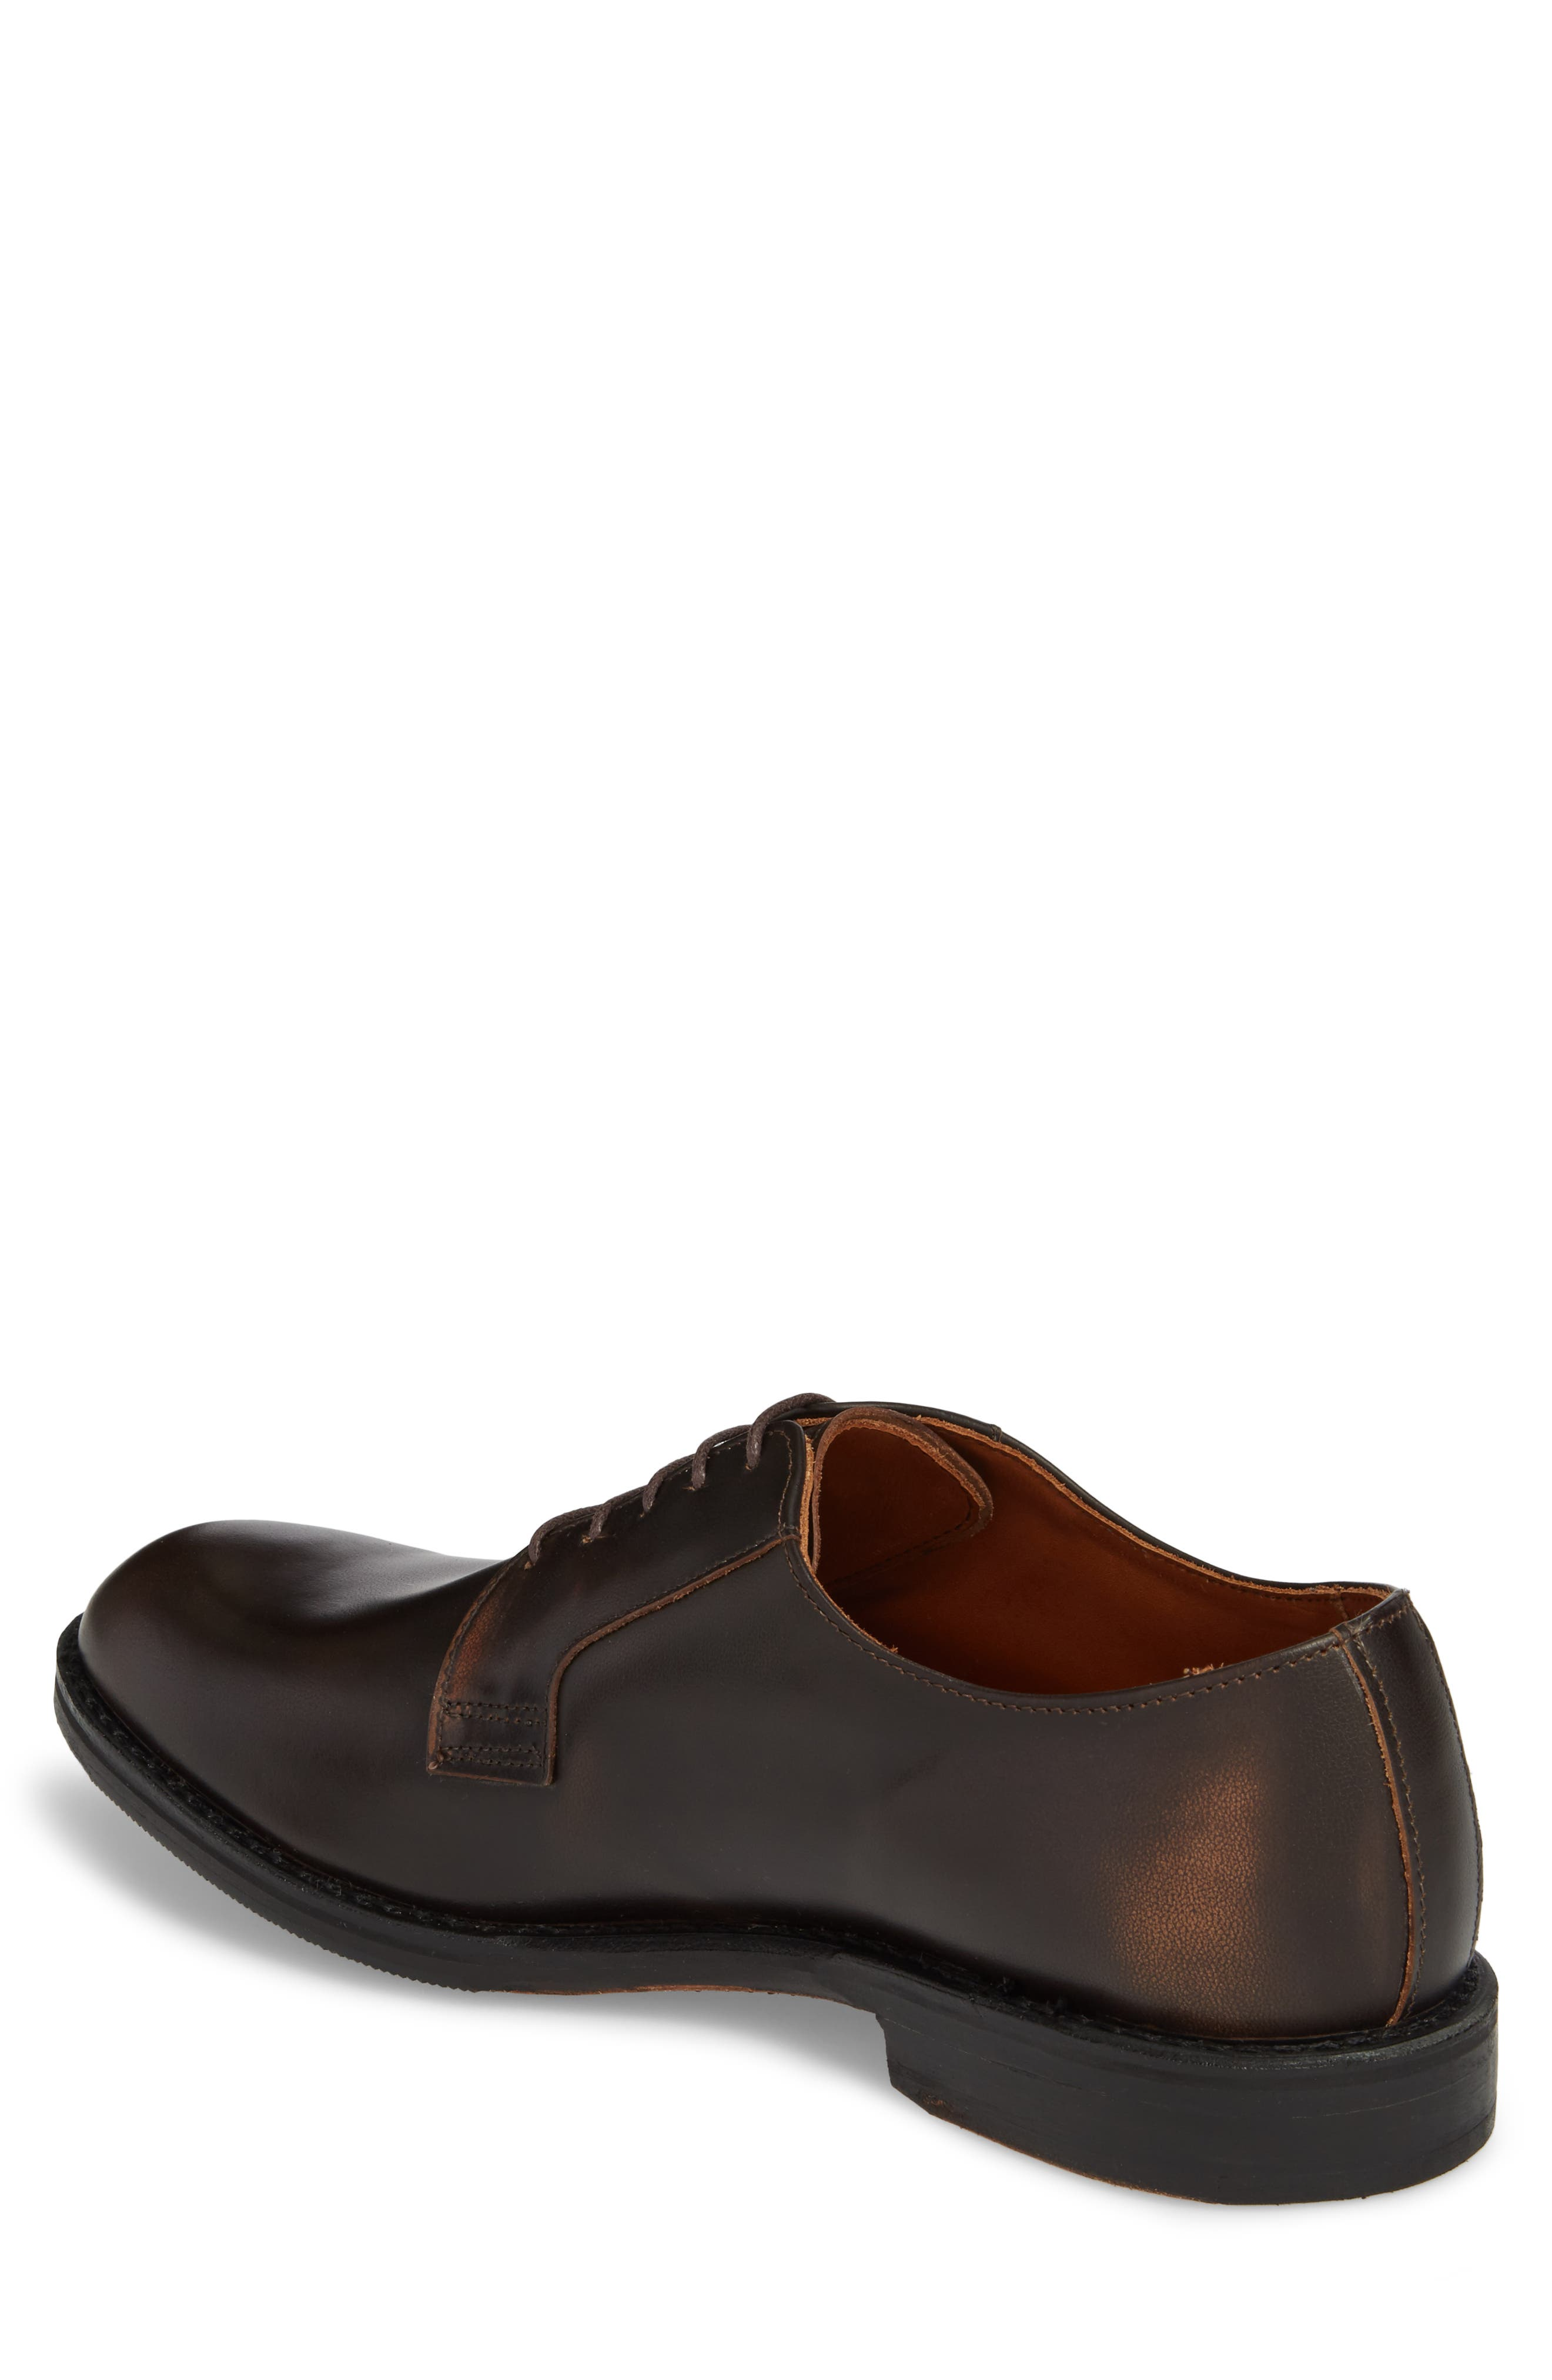 Whitney Plain Toe Derby,                             Alternate thumbnail 2, color,                             Brown Leather